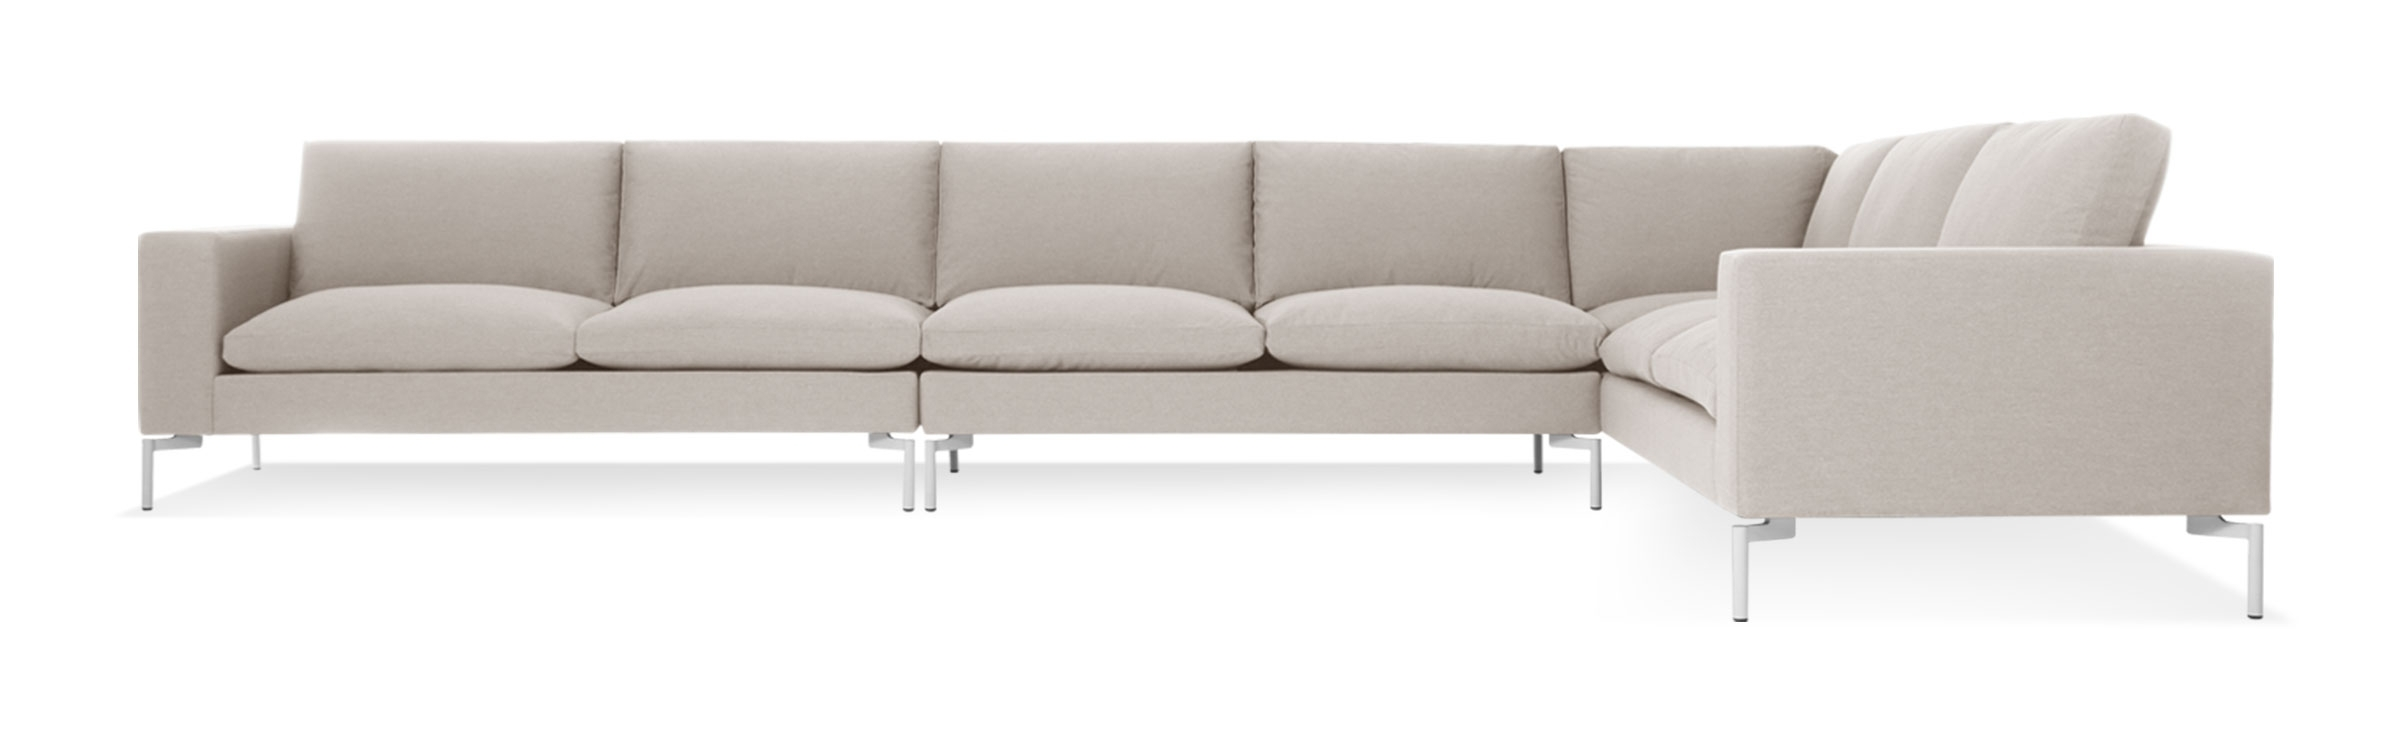 Furniture : Sectional Sofa Sizes Buy Sectional Vancouver Corner Pertaining To Fashionable Greenville Nc Sectional Sofas (View 18 of 20)